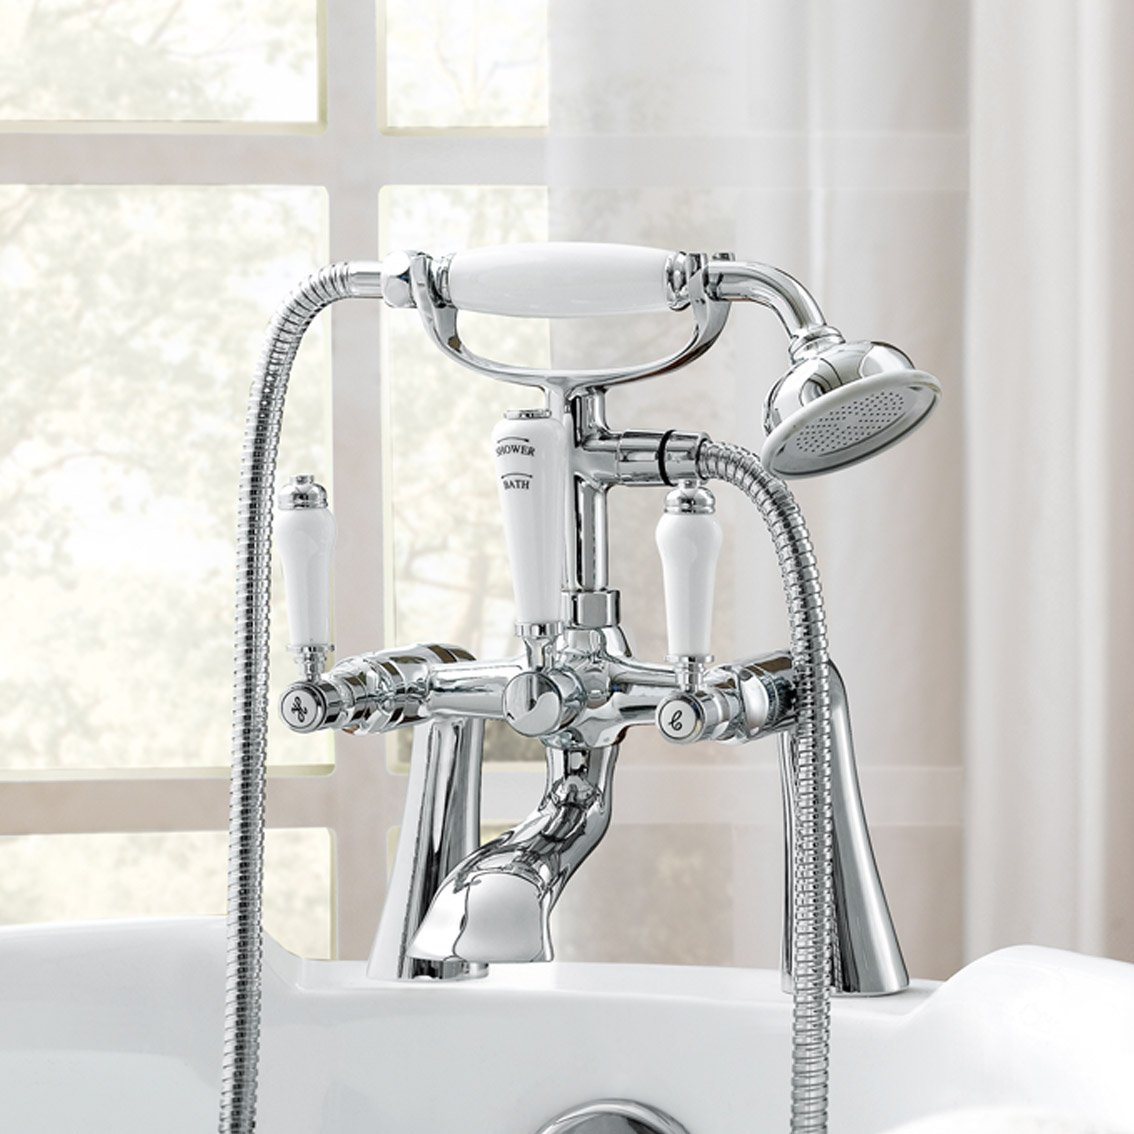 Bathroom Fixtures And Fittings Definition With Fantastic Photos In Germany